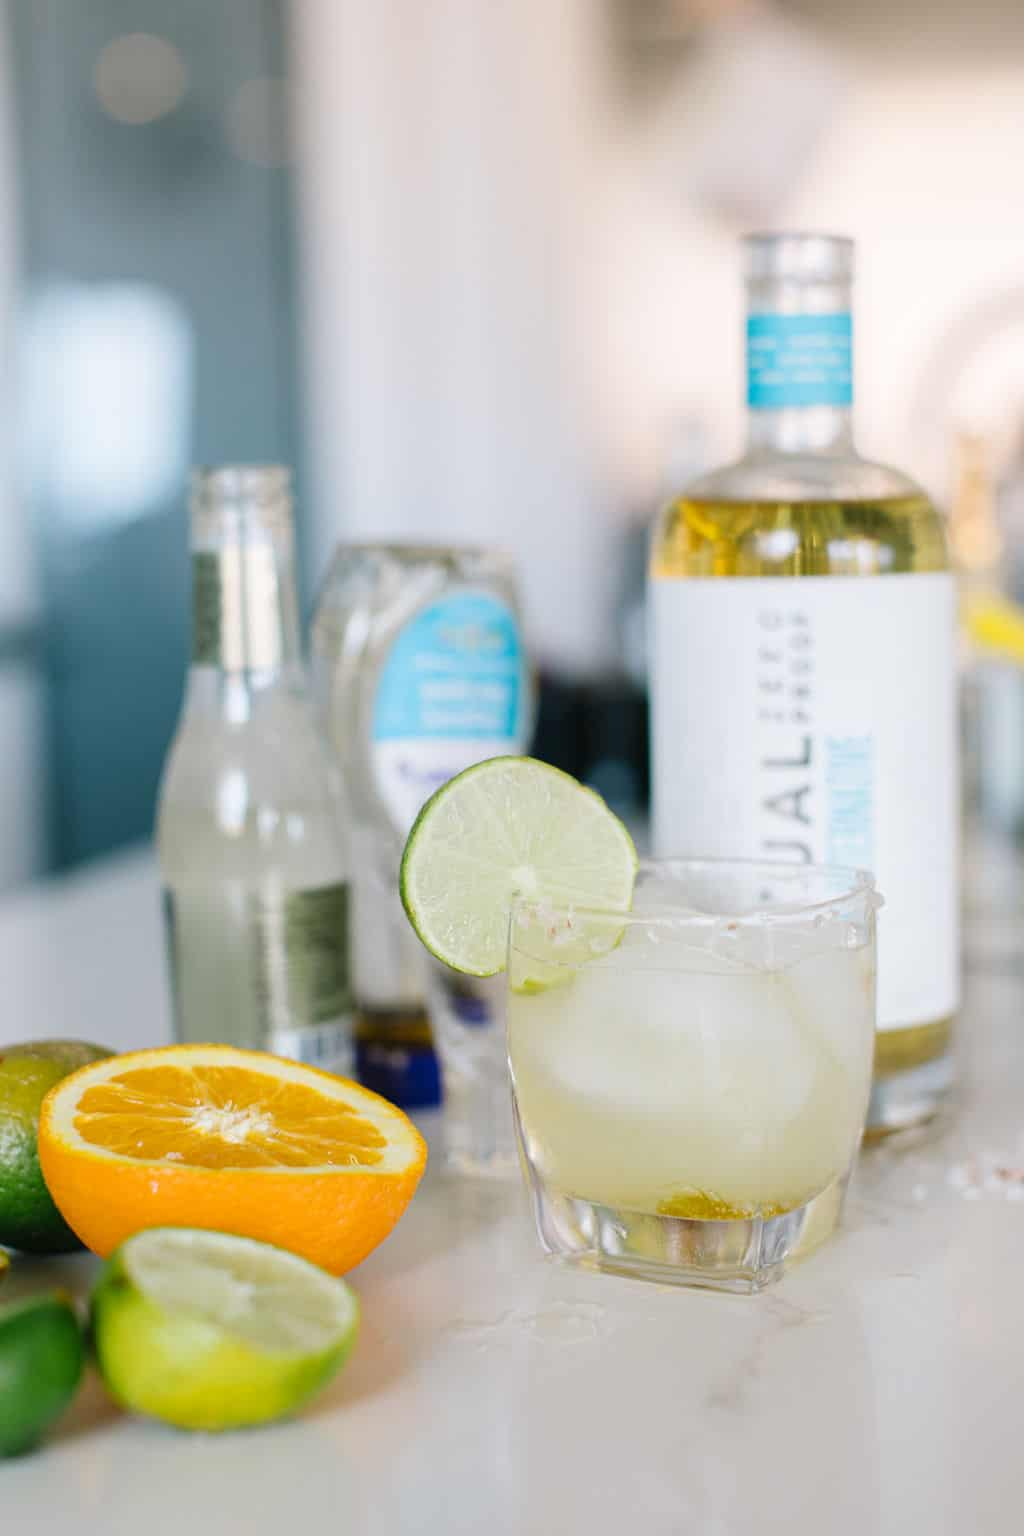 Virgin margarita with ingredients on a counter